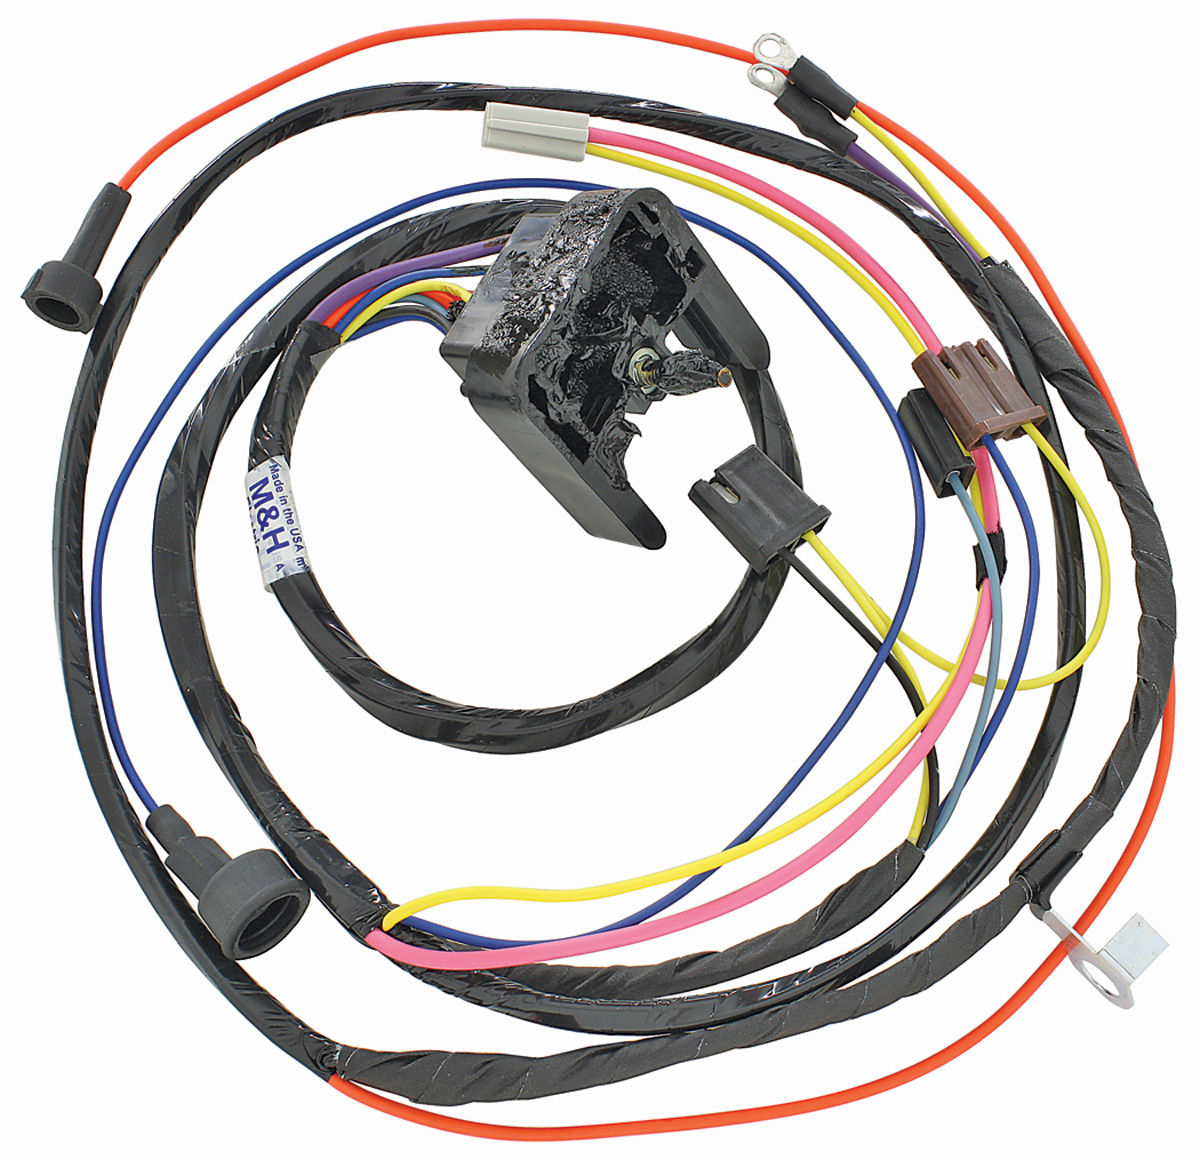 1971 chevelle wiring harness wiring diagram1971 chevelle wiring harness